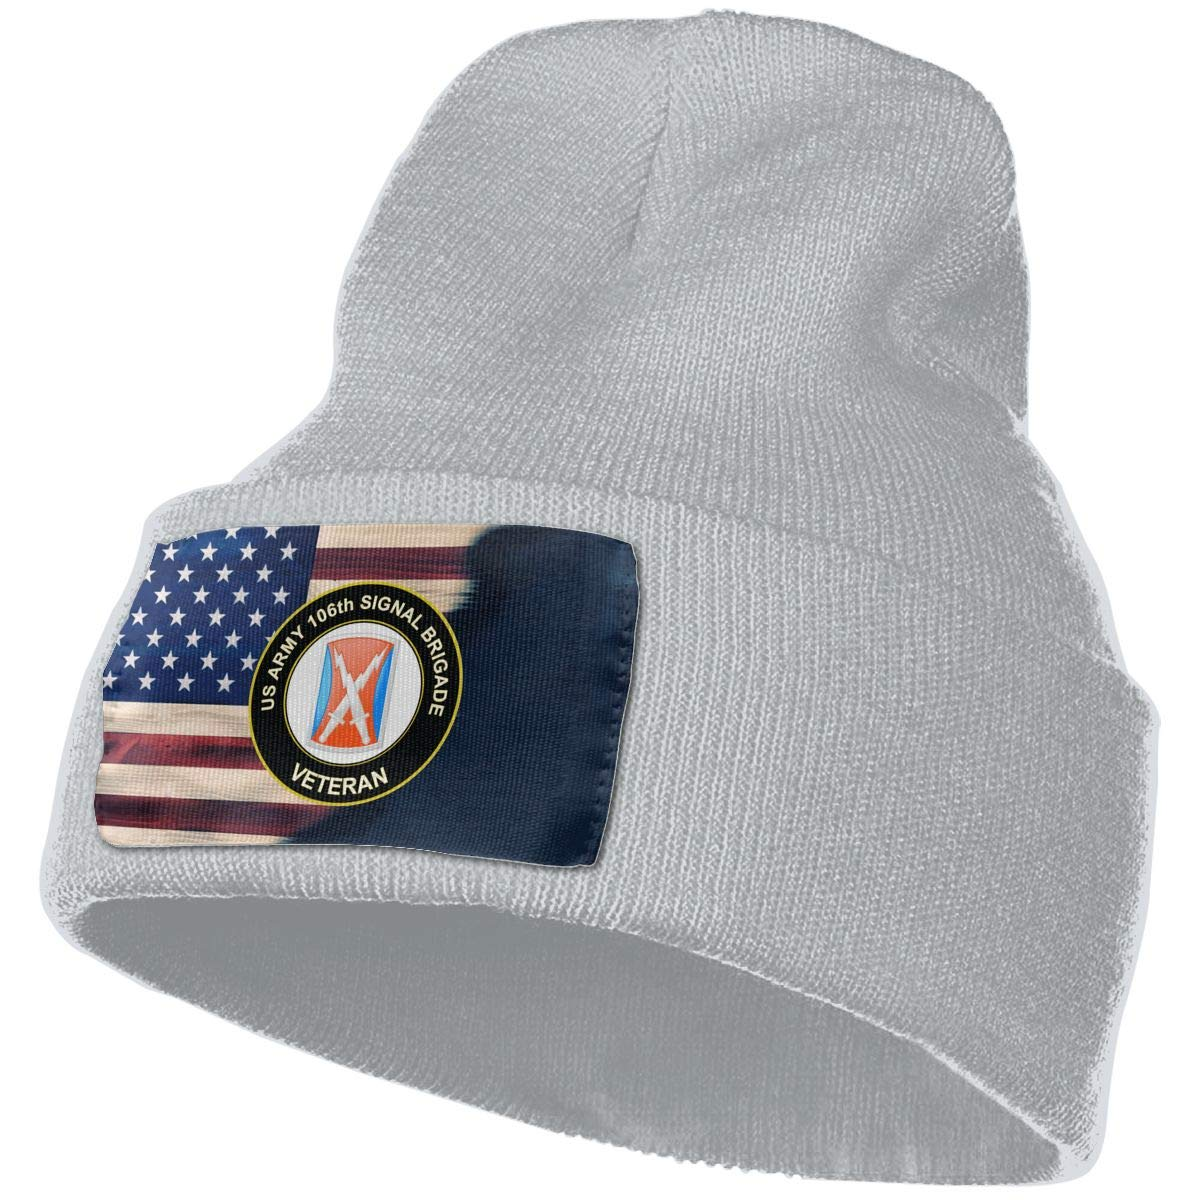 US Army 106th Signal Brigade Veteran Mens Beanie Cap Skull Cap Winter Warm Knitting Hats.